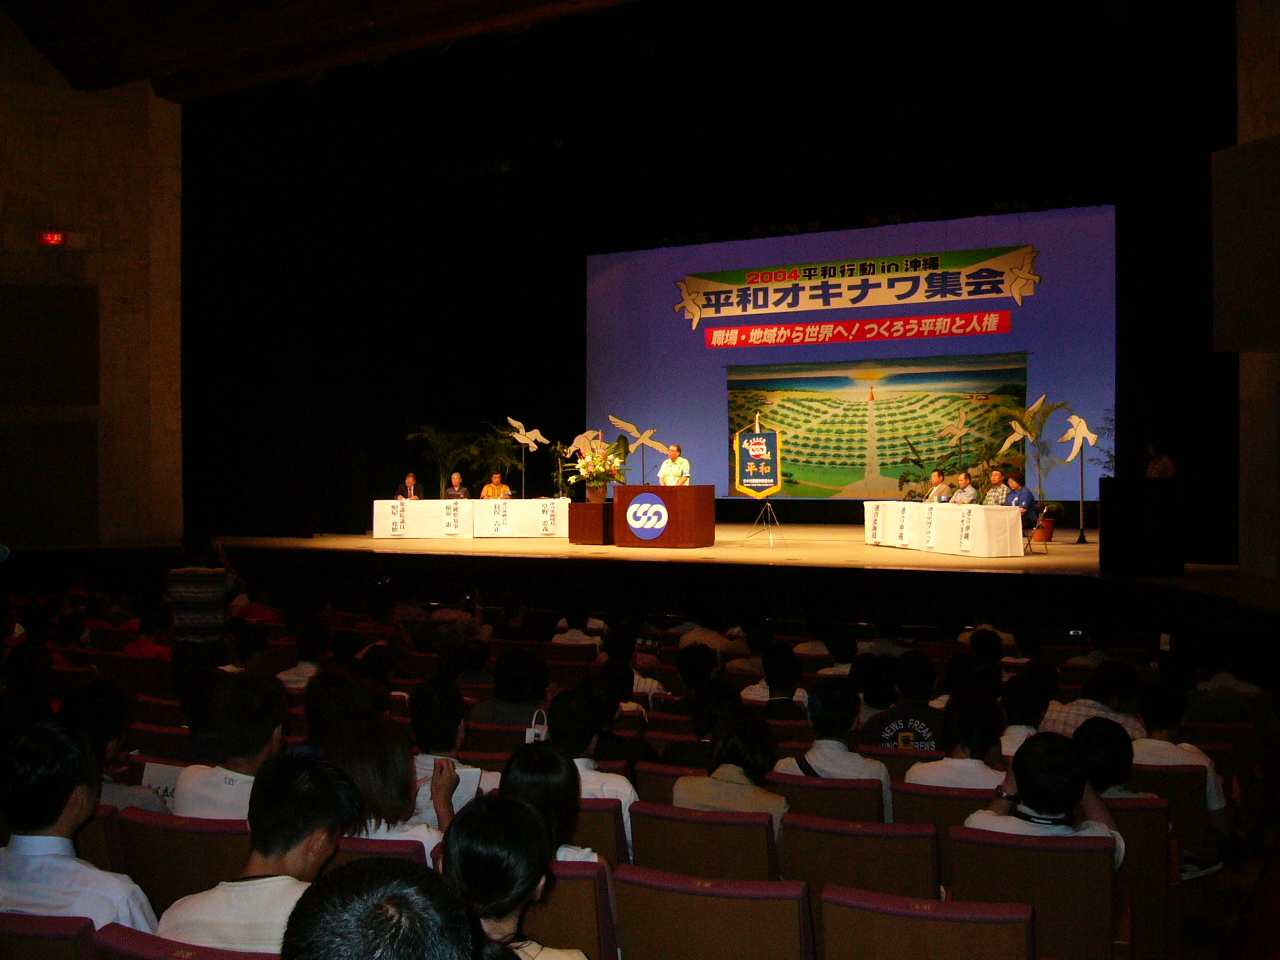 Photo: RENGO General Secretary Kusano said in his opening speech,